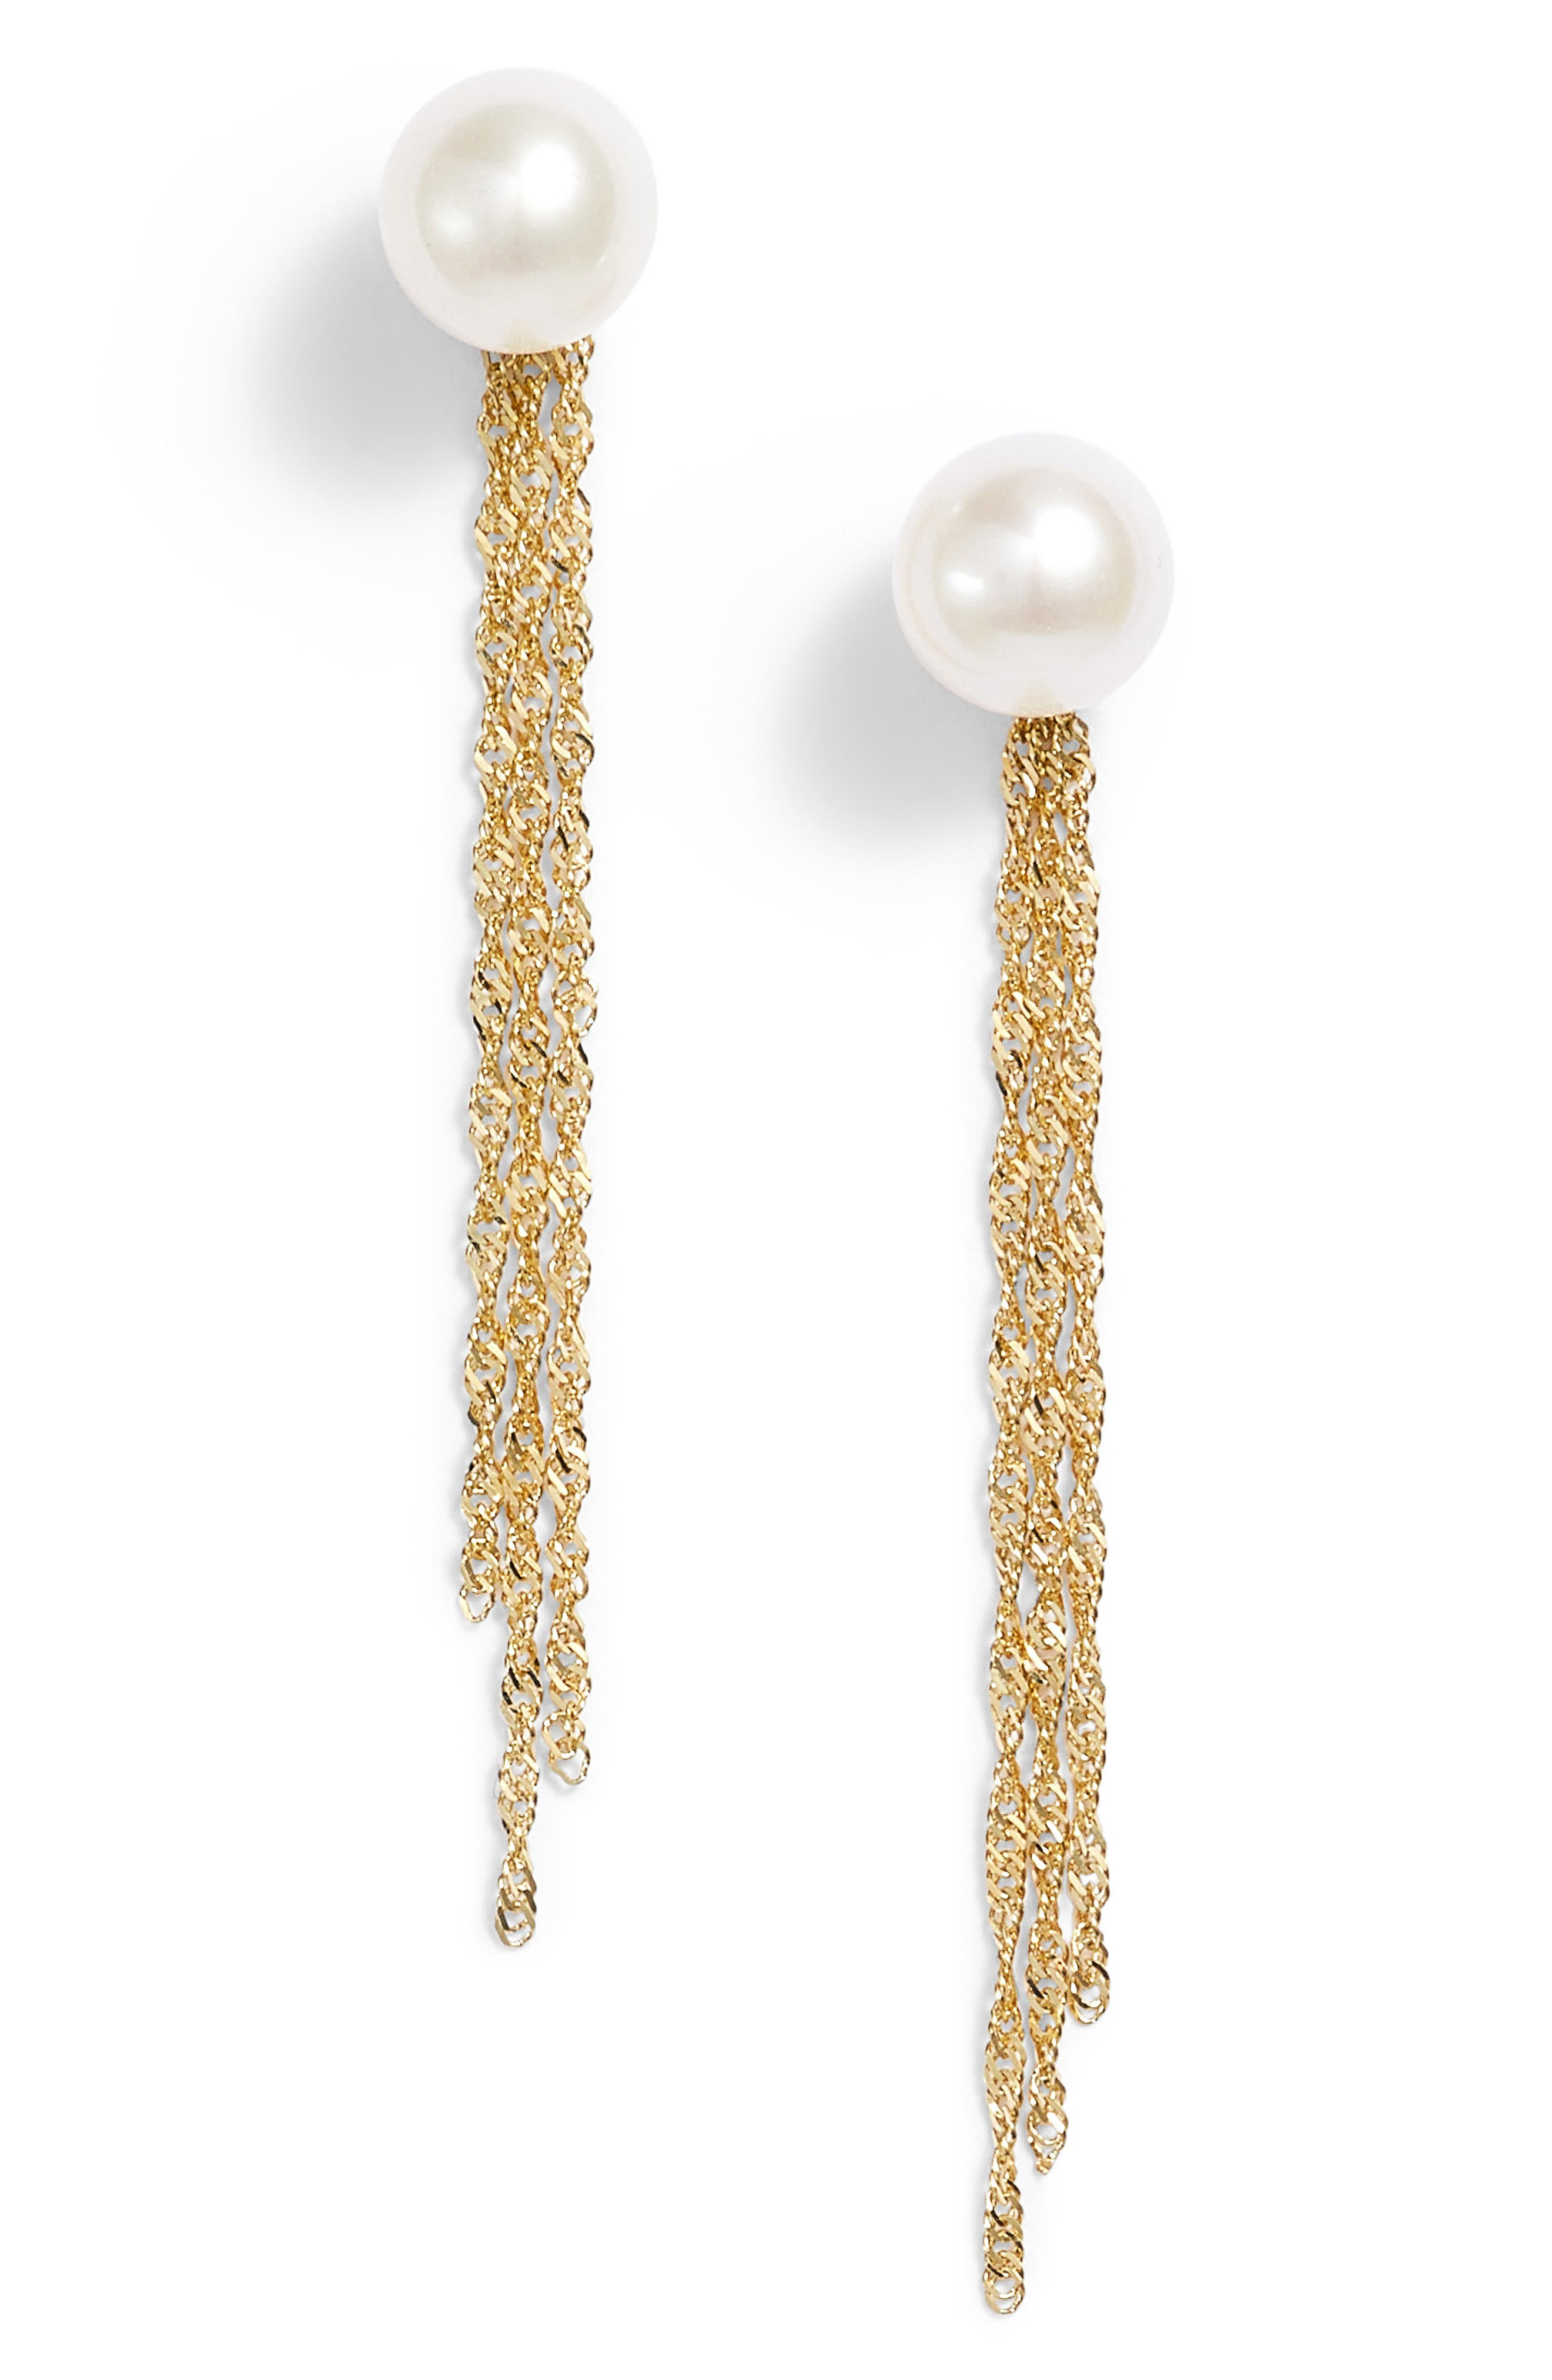 Gold Tassel Jacket Pearl Stud Earrings,                             Main thumbnail 1, color,                             YELLOW GOLD/ PEARL